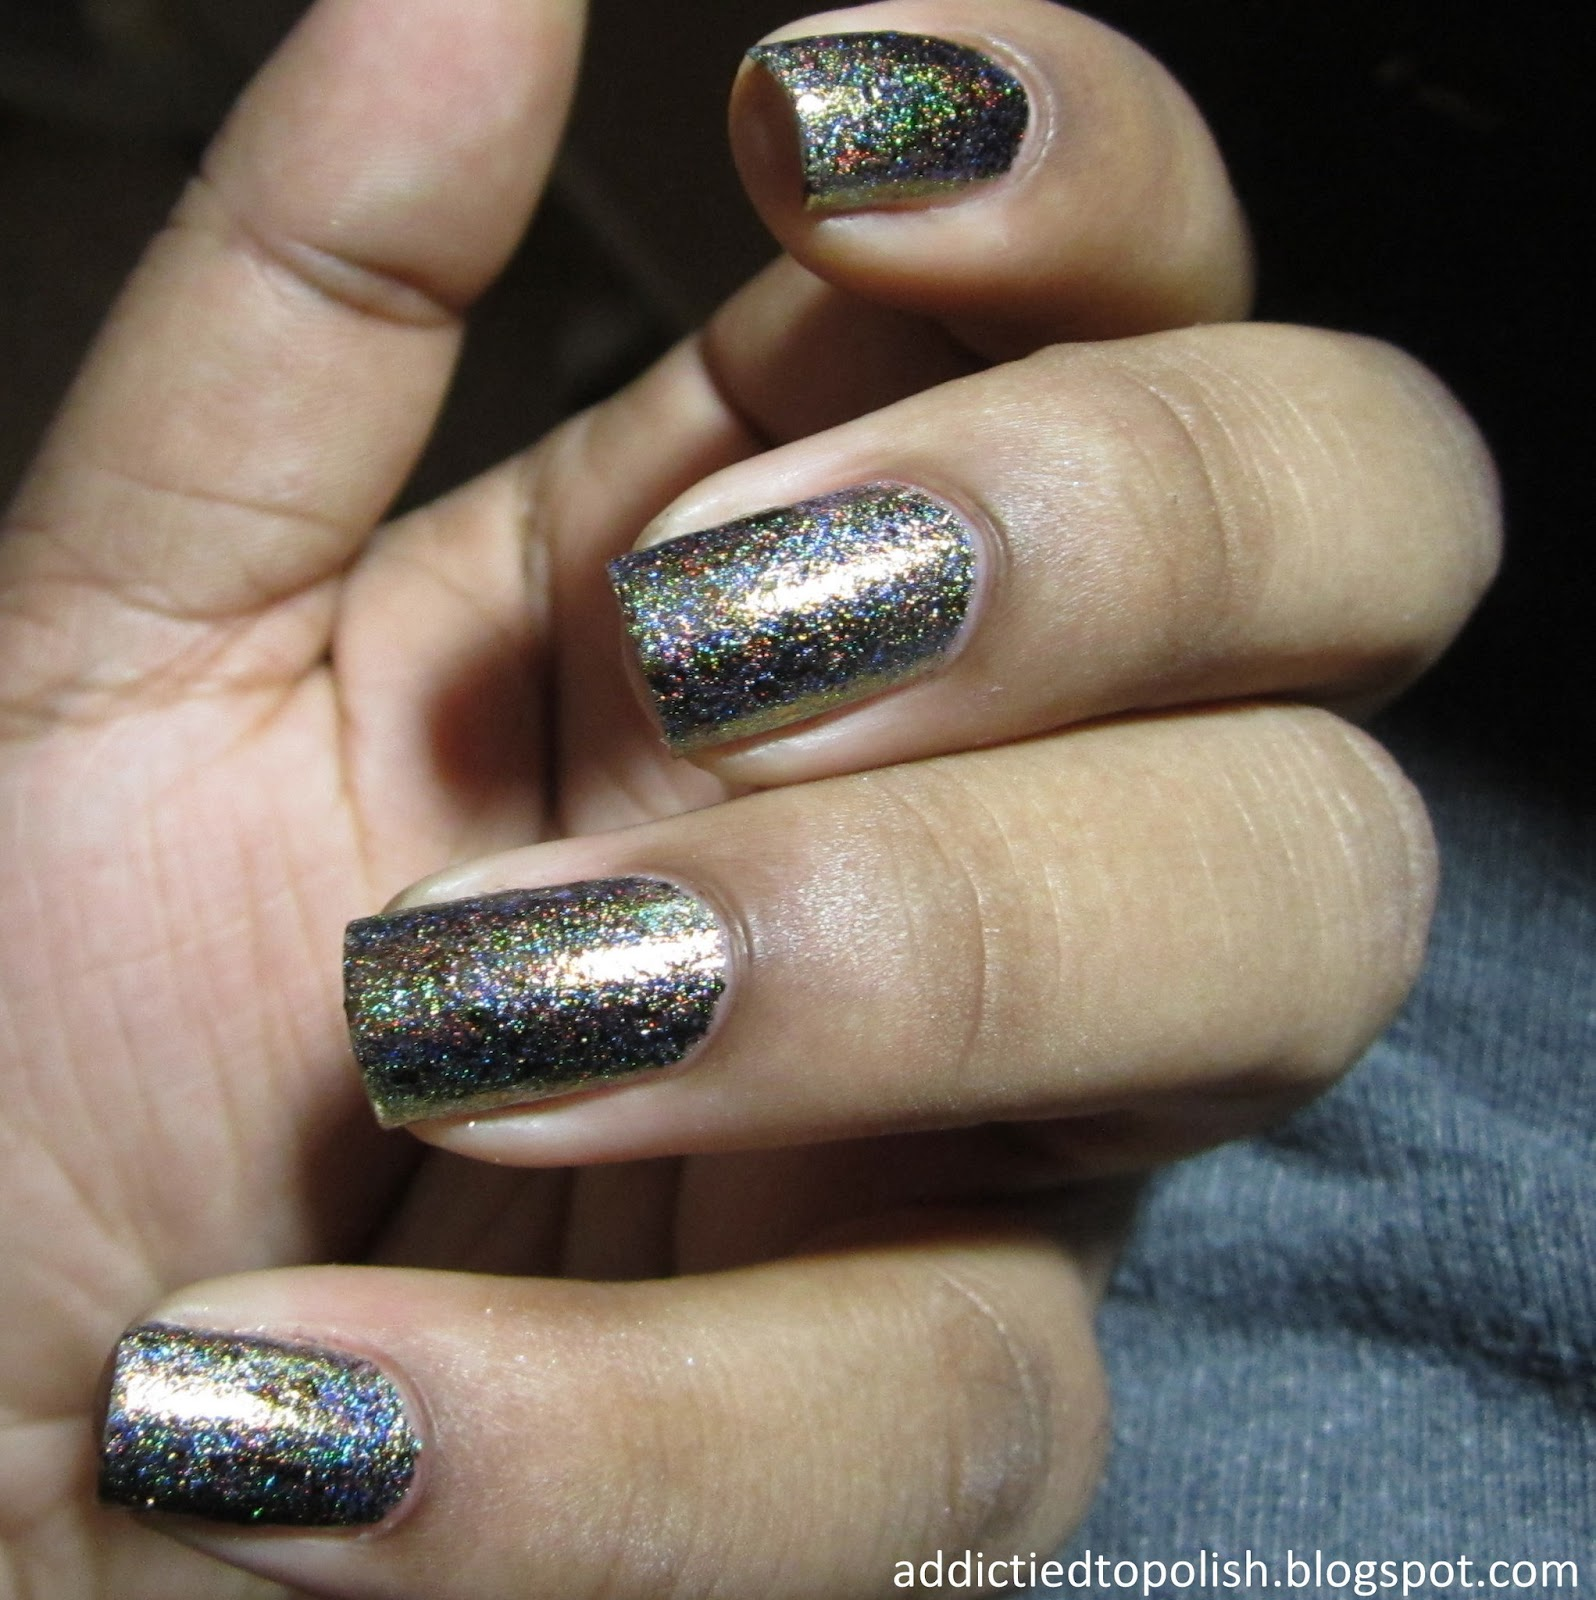 Indigo Bananas Quantum Gravity Holo Chrome Flakies